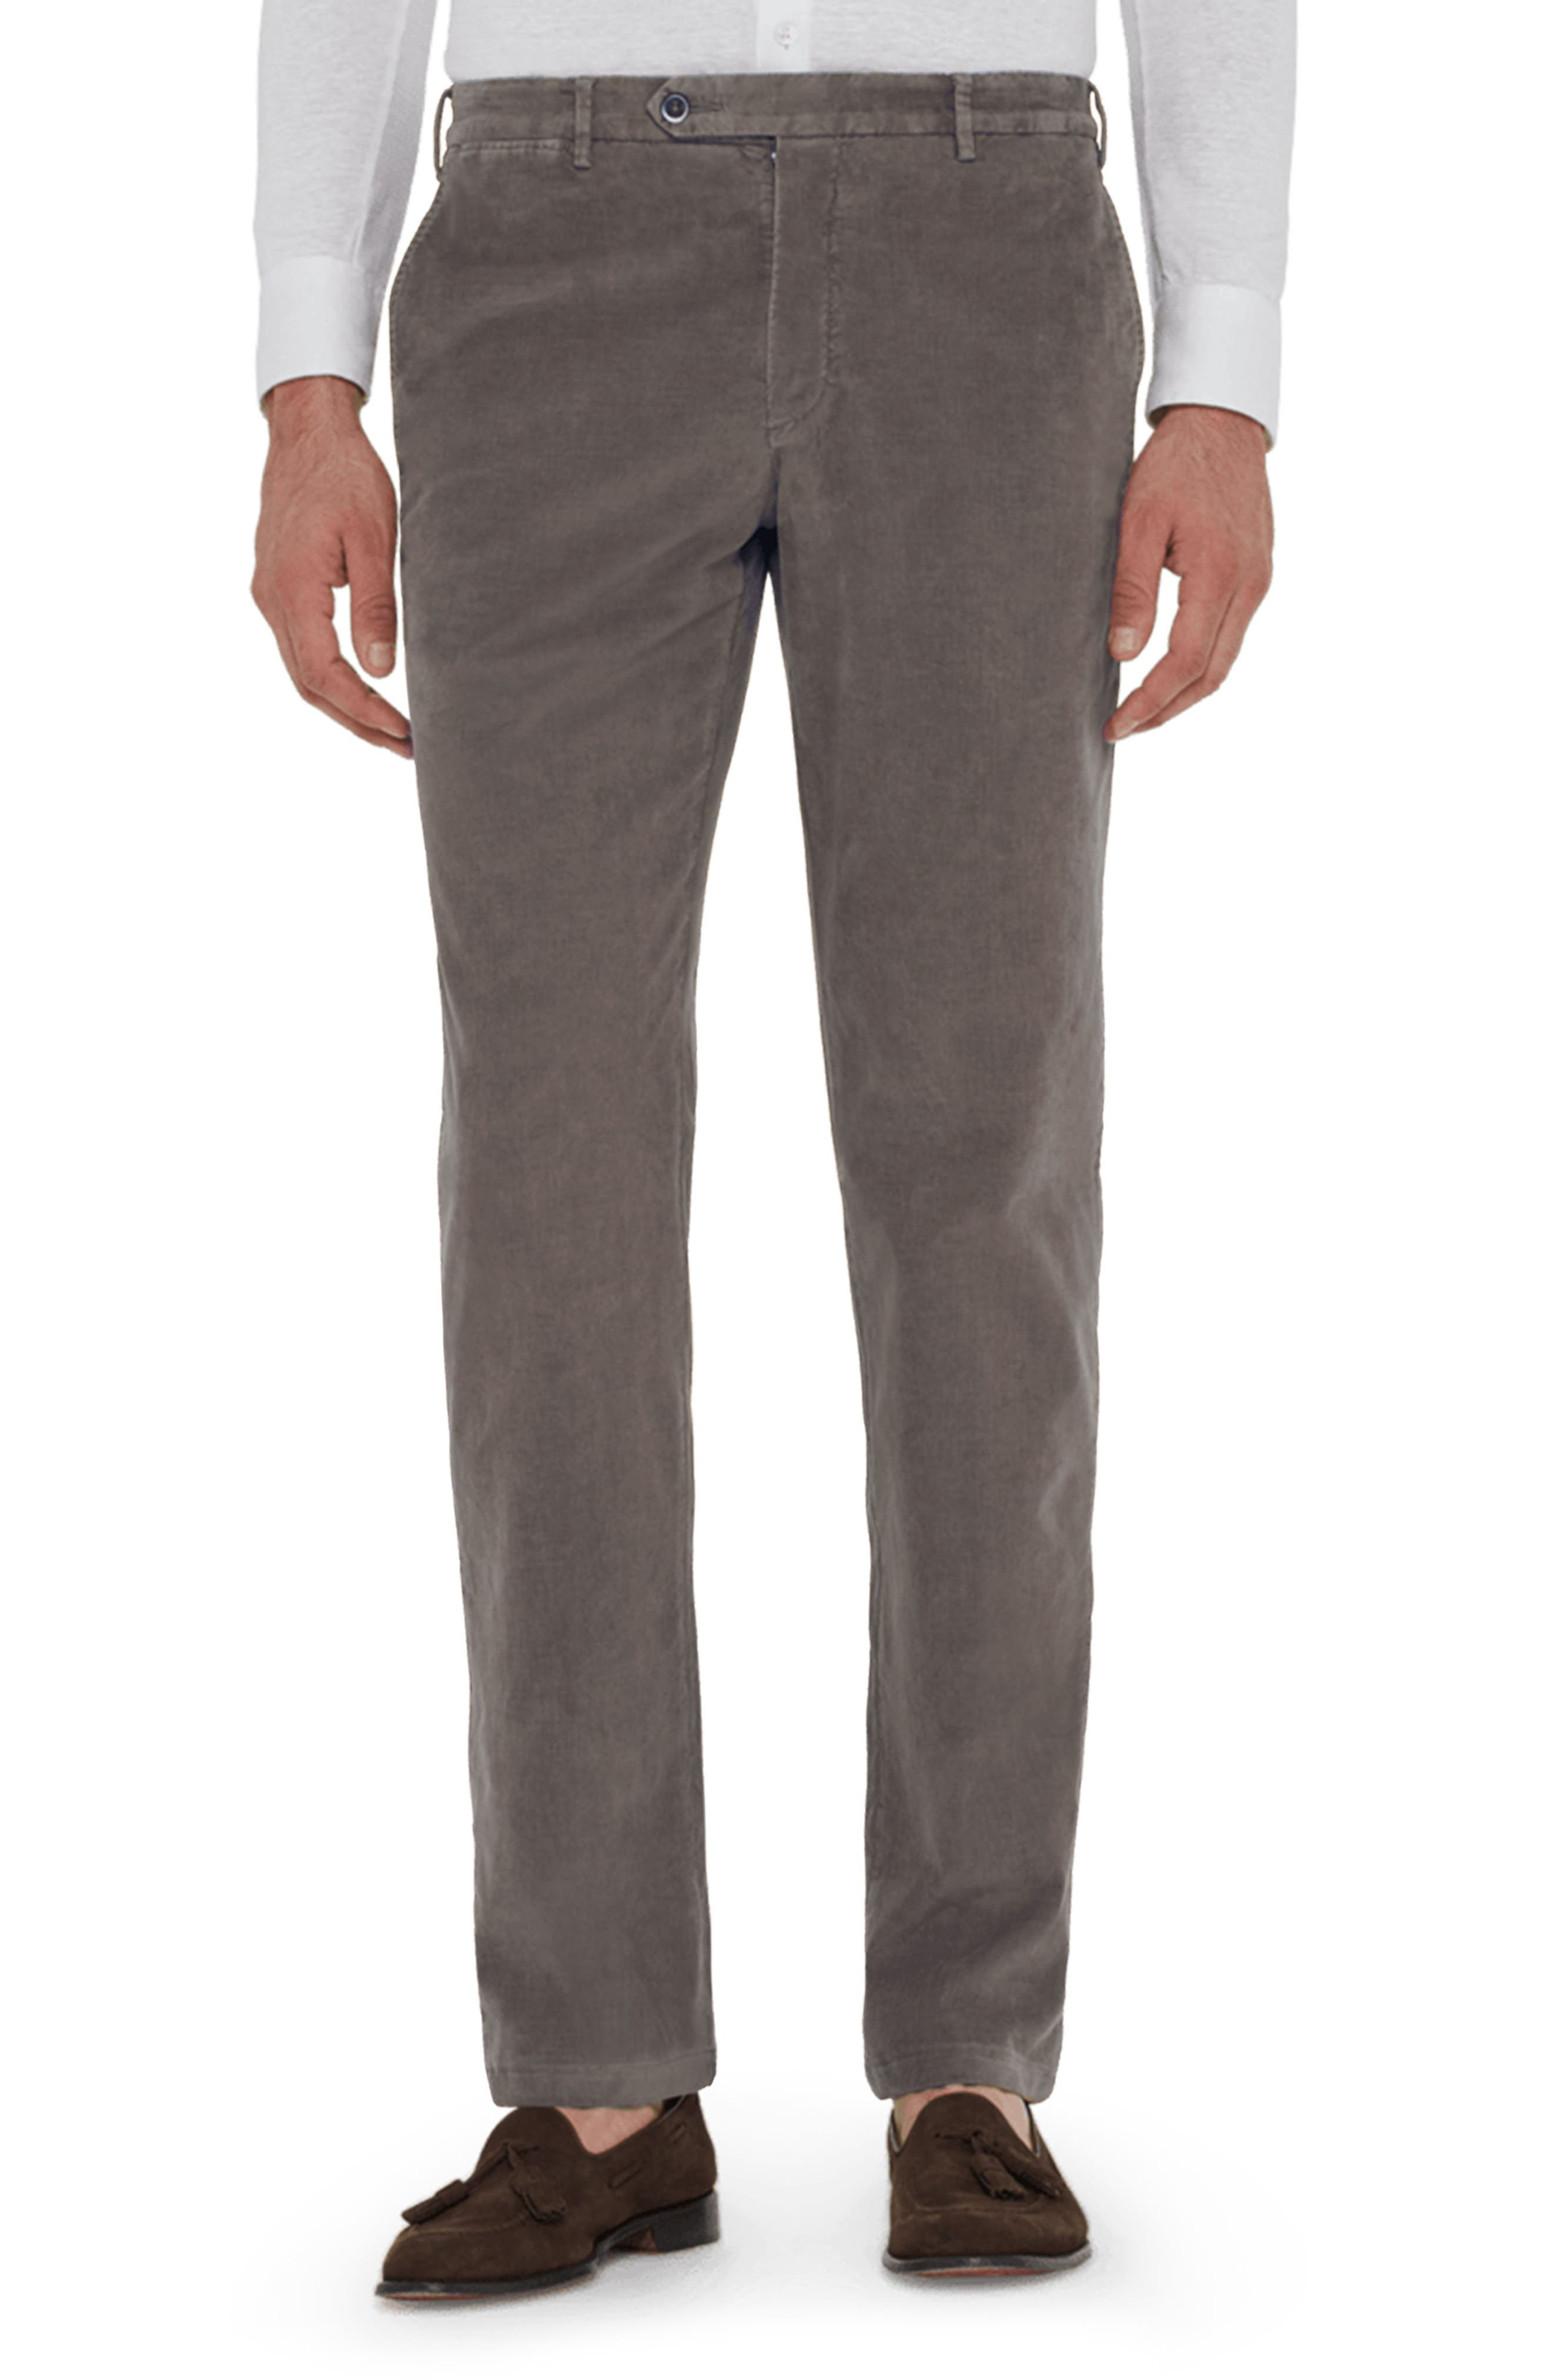 ZANELLA Curtis Flat Front Stretch Corduroy Cotton Trousers in Grey